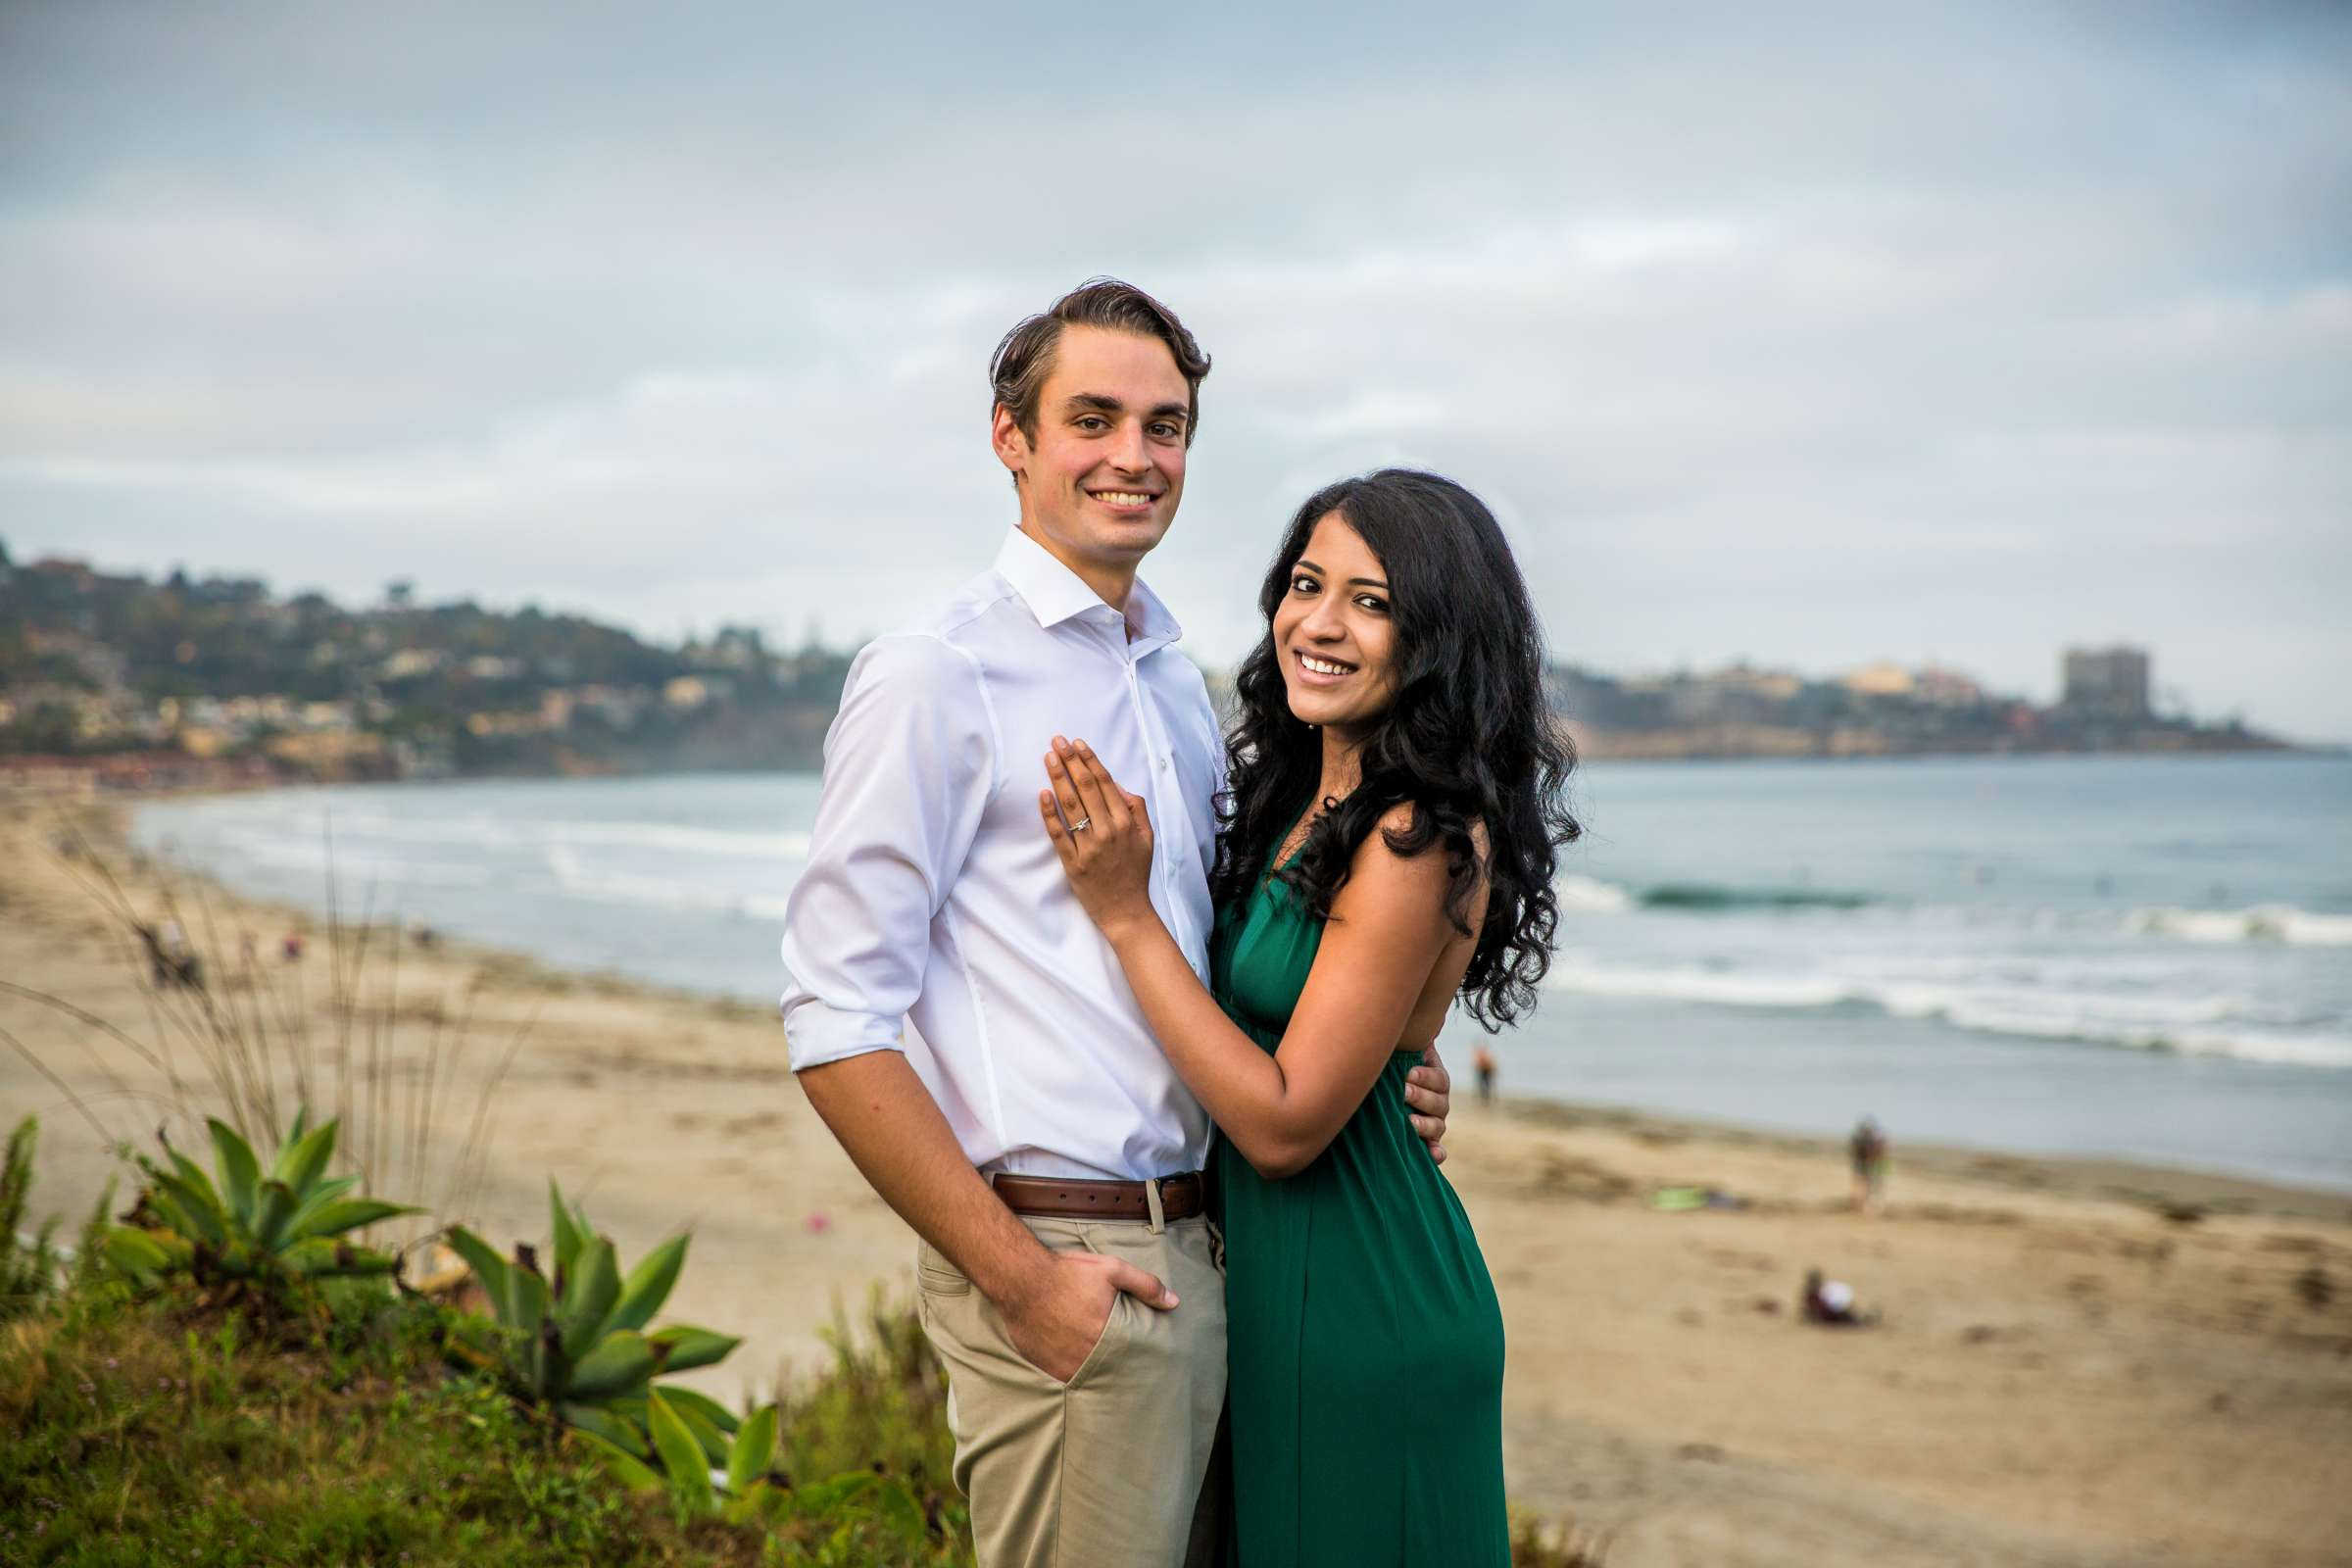 Grand Tradition Estate Engagement, Nikita and Jaycob Engagement Photo #13 by True Photography